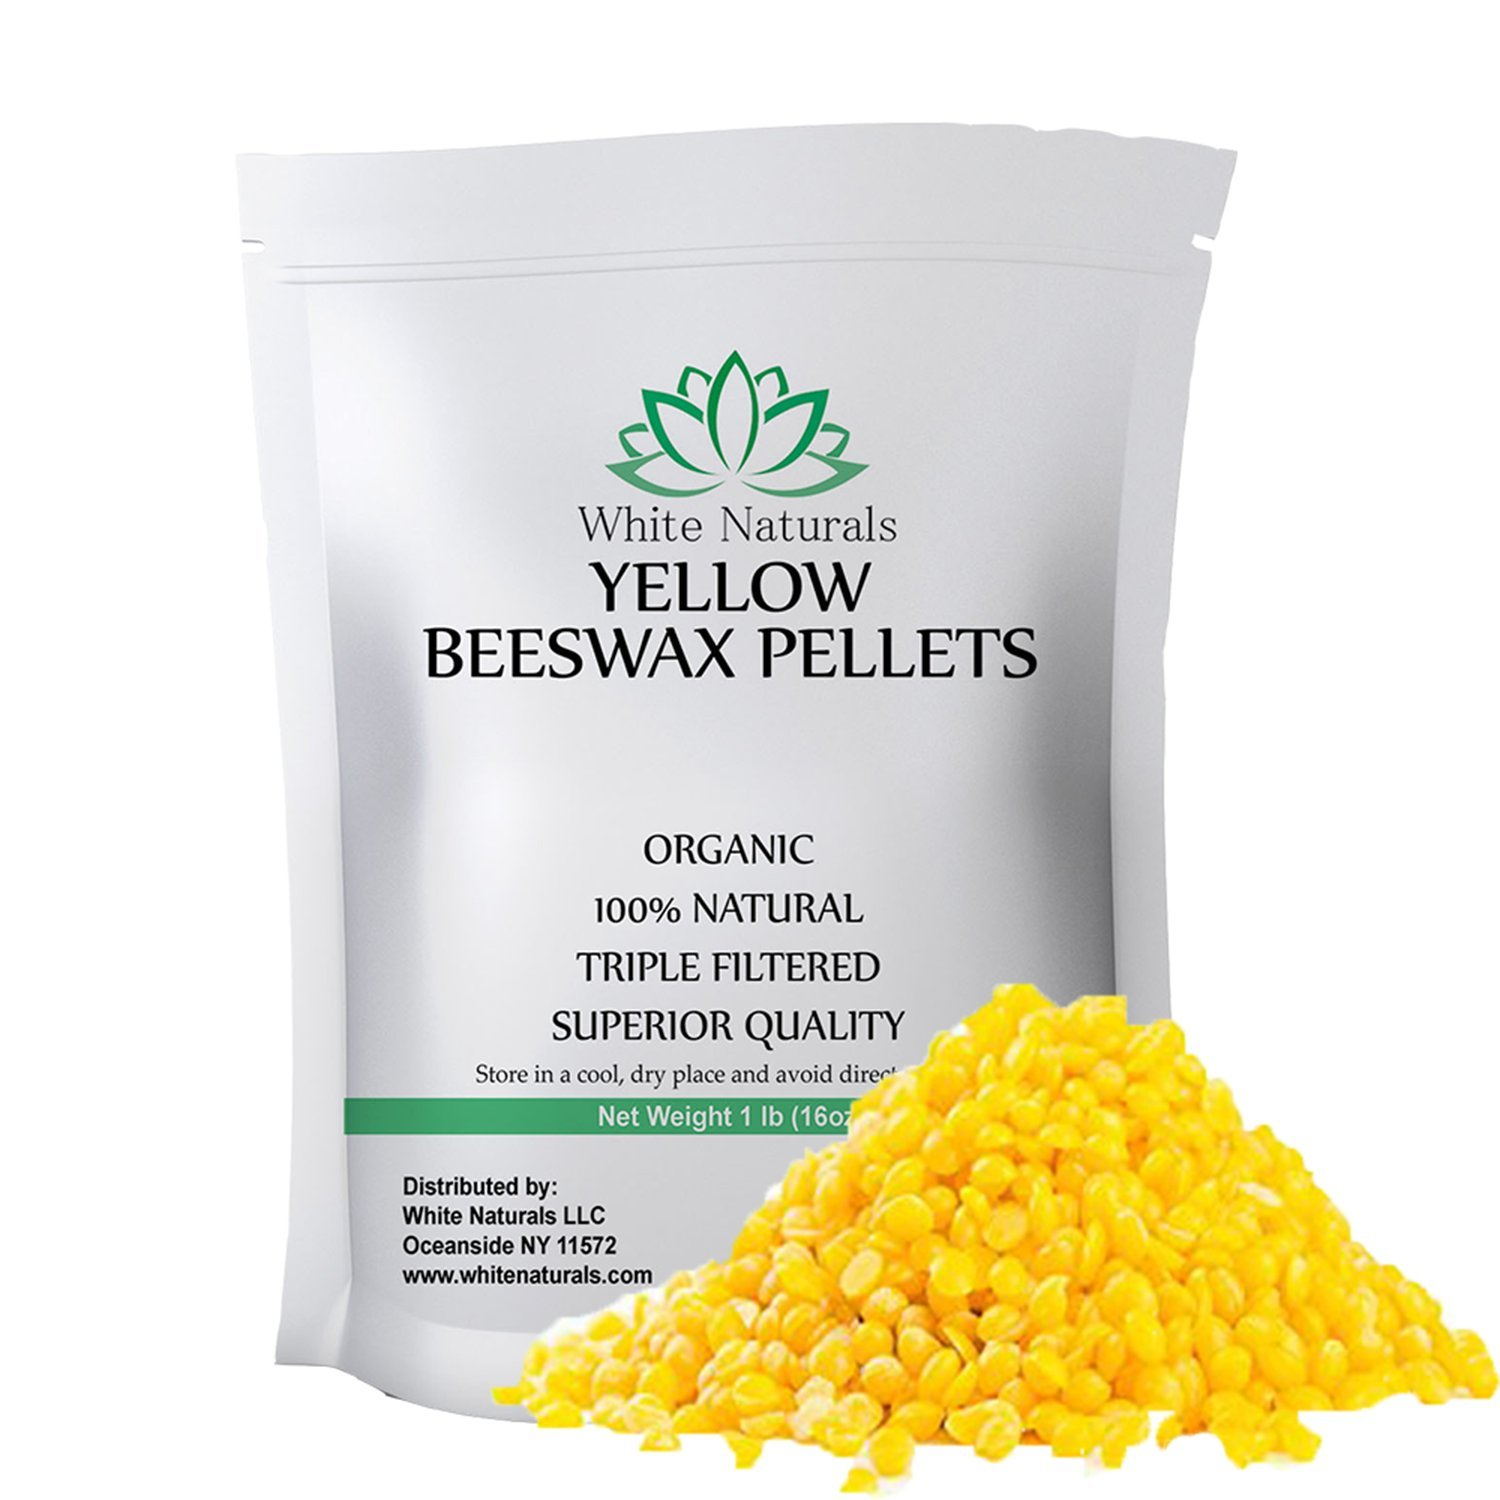 Organic Yellow Beeswax Pellets 1 lb , Pure, Natural, Cosmetic Grade, Bees Wax Pastilles, Triple Filtered, Great For DIY Projects, Lip Balms, Lotions, Candles By White Naturals